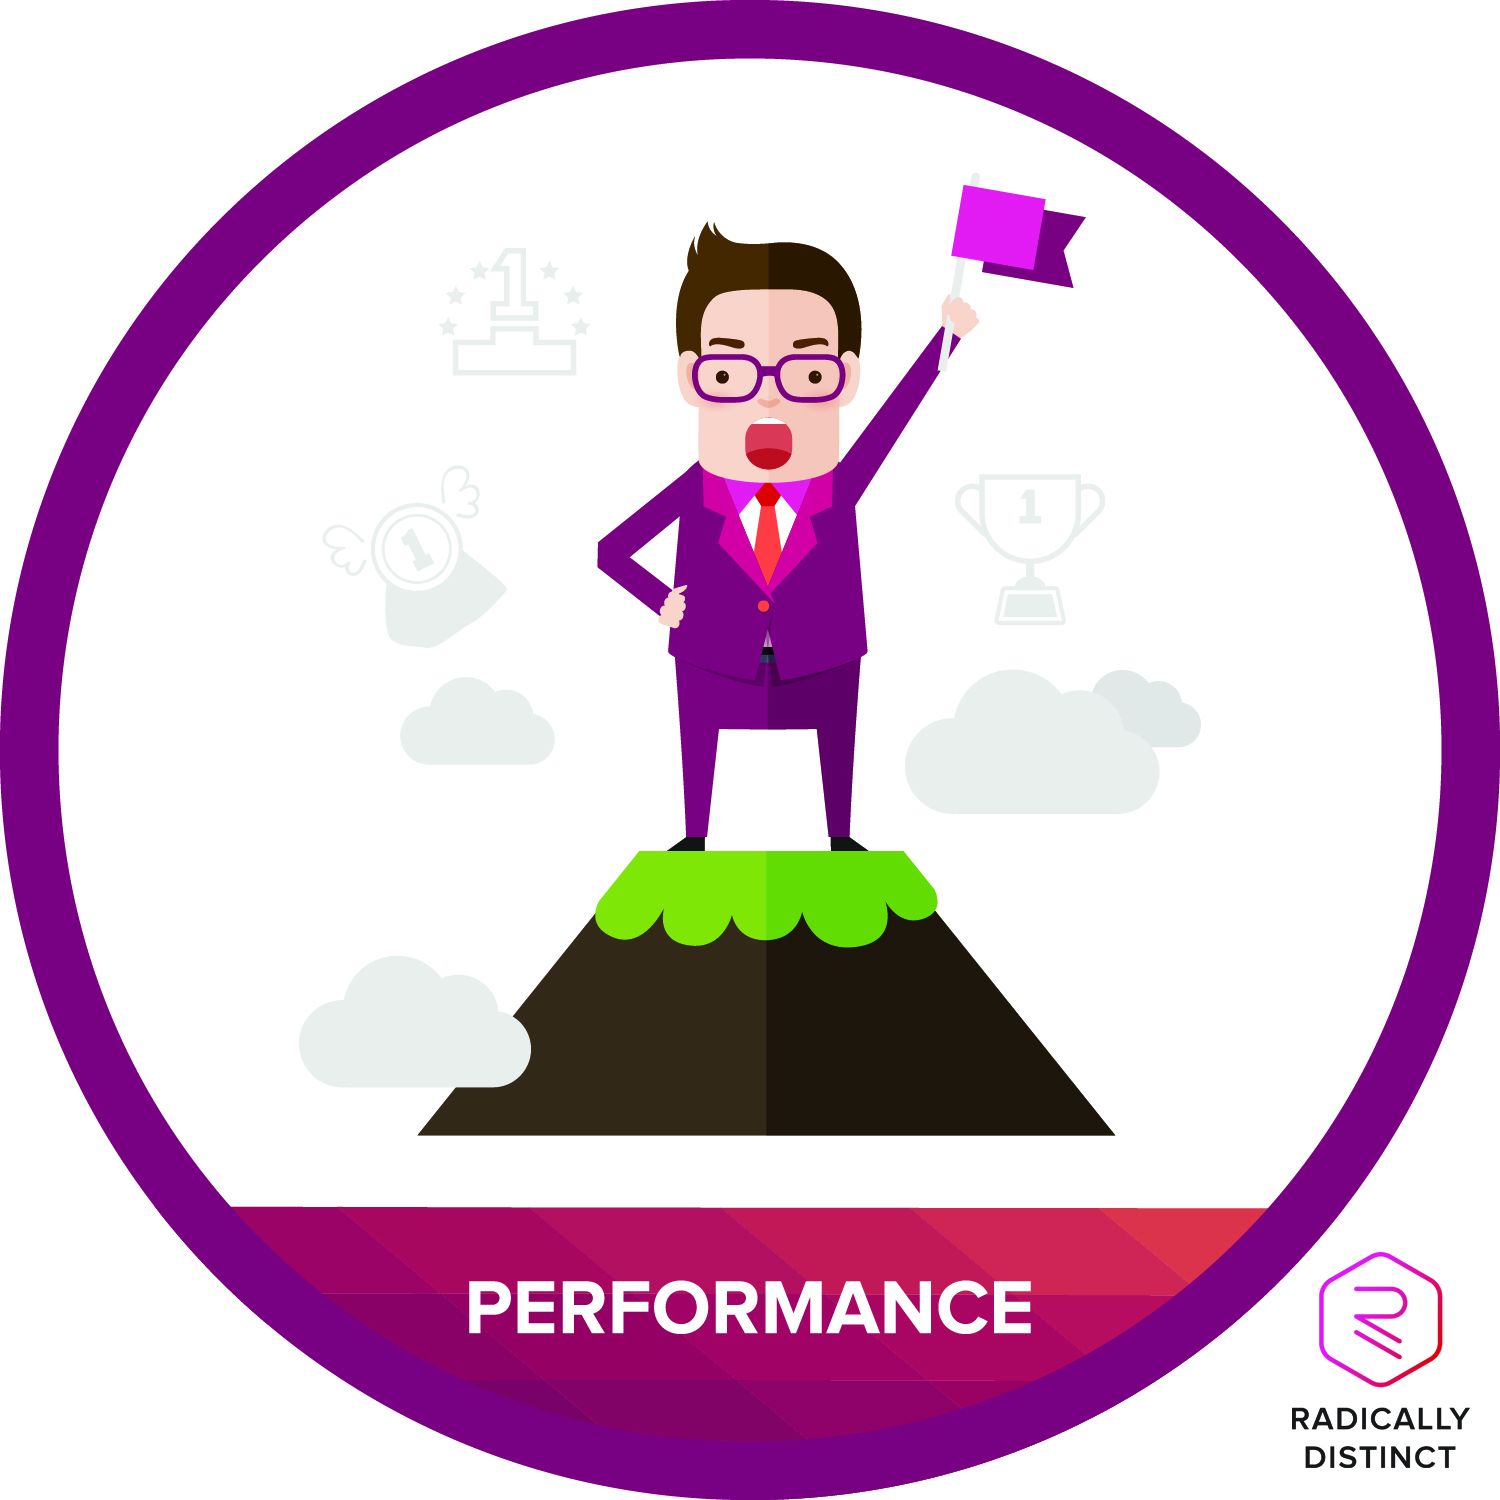 How to maximize your brand's power to produce results - Performance is the 5th pillar of The RAD Method. In this show I cover what brand power is, how to say and do the right things at the right time to create the results you intend and how to close the gap between forecasted and actual results.